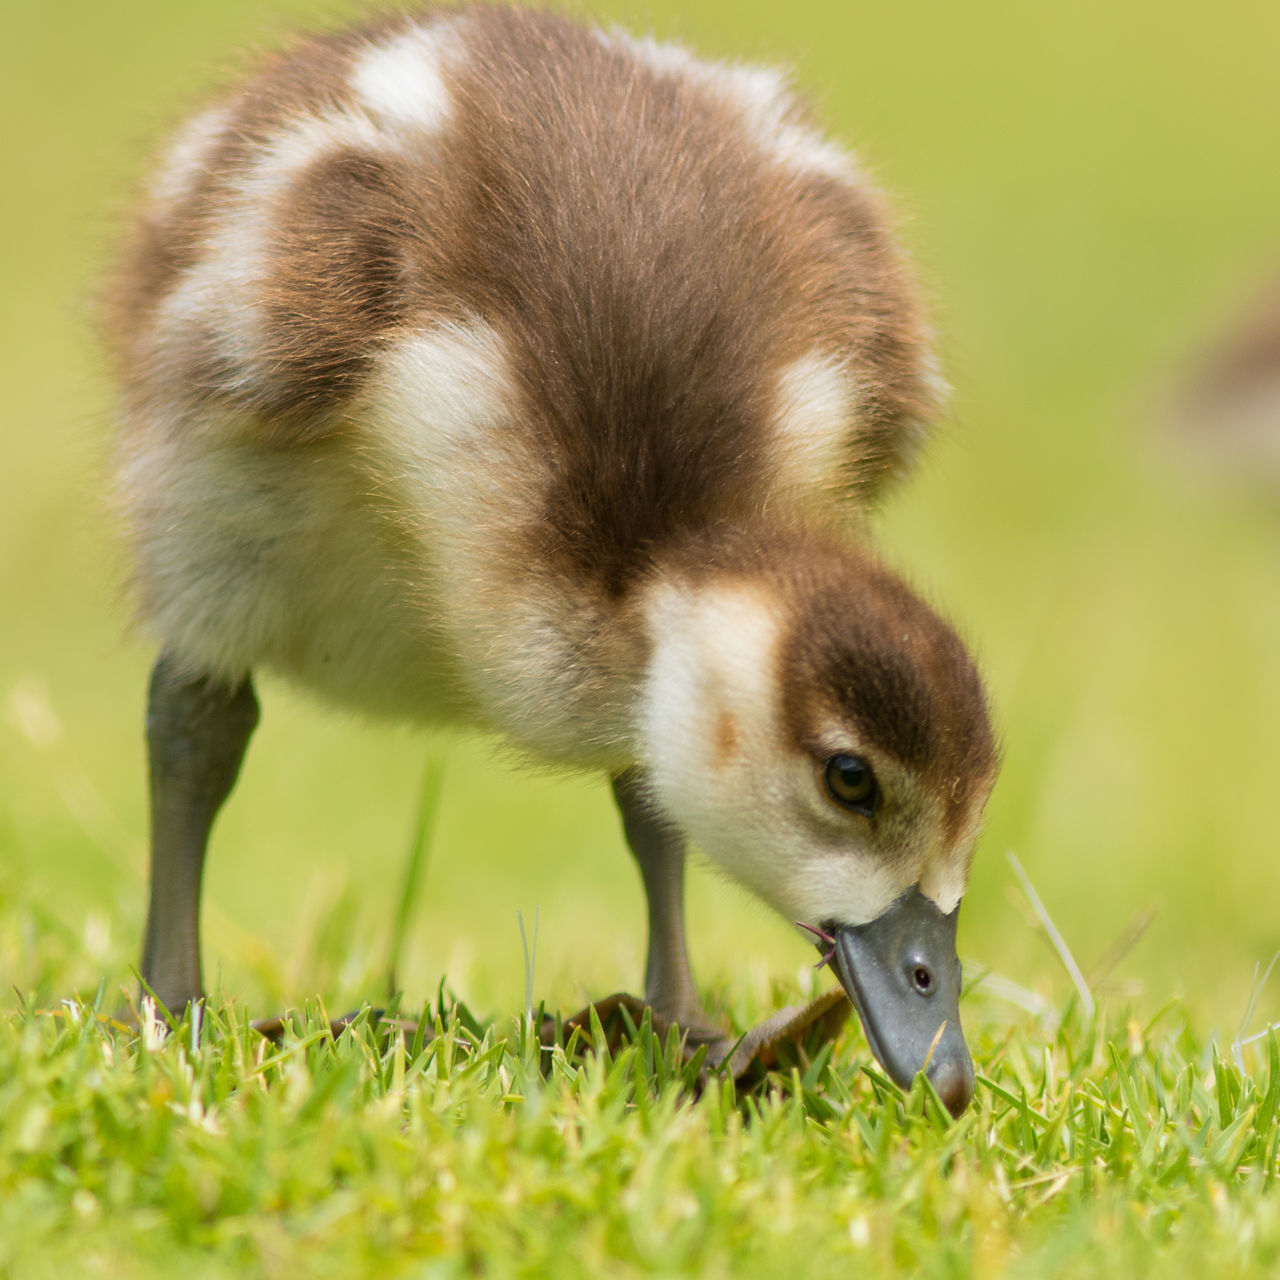 Young egyptian gosling feeding on the grass at Kirstenbosch Botanical gardens Animal Themes Animal Wildlife Animals In The Wild Beauty In Nature Close-up Day Egyptian Goose Gosling Grass Green Color Mammal Nature No People One Animal Outdoors Young Animal